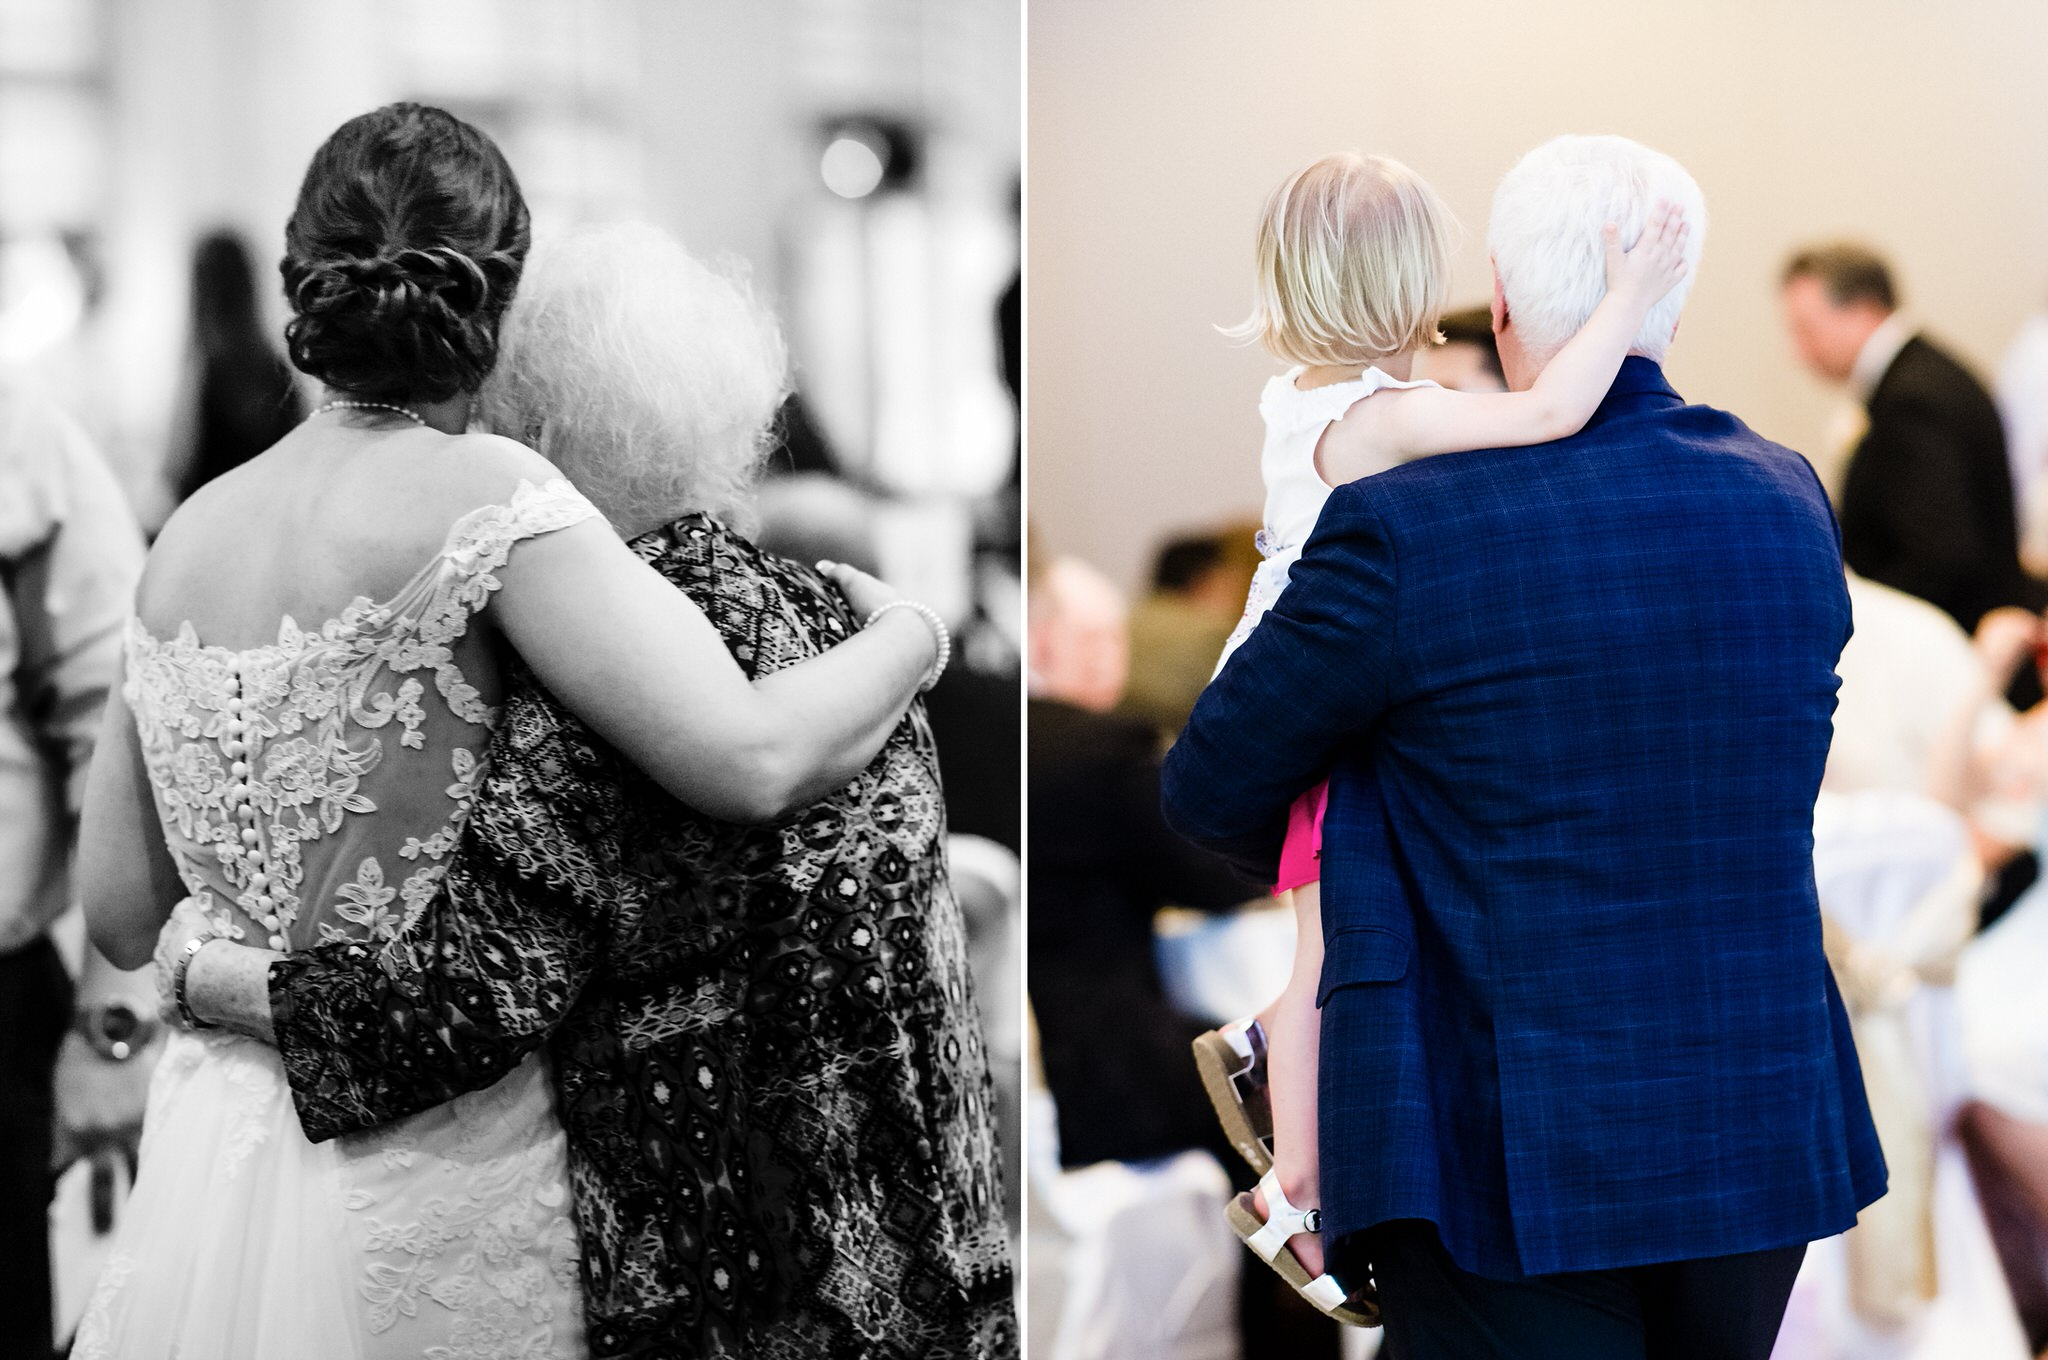 Two generational hugs within moments of one another.